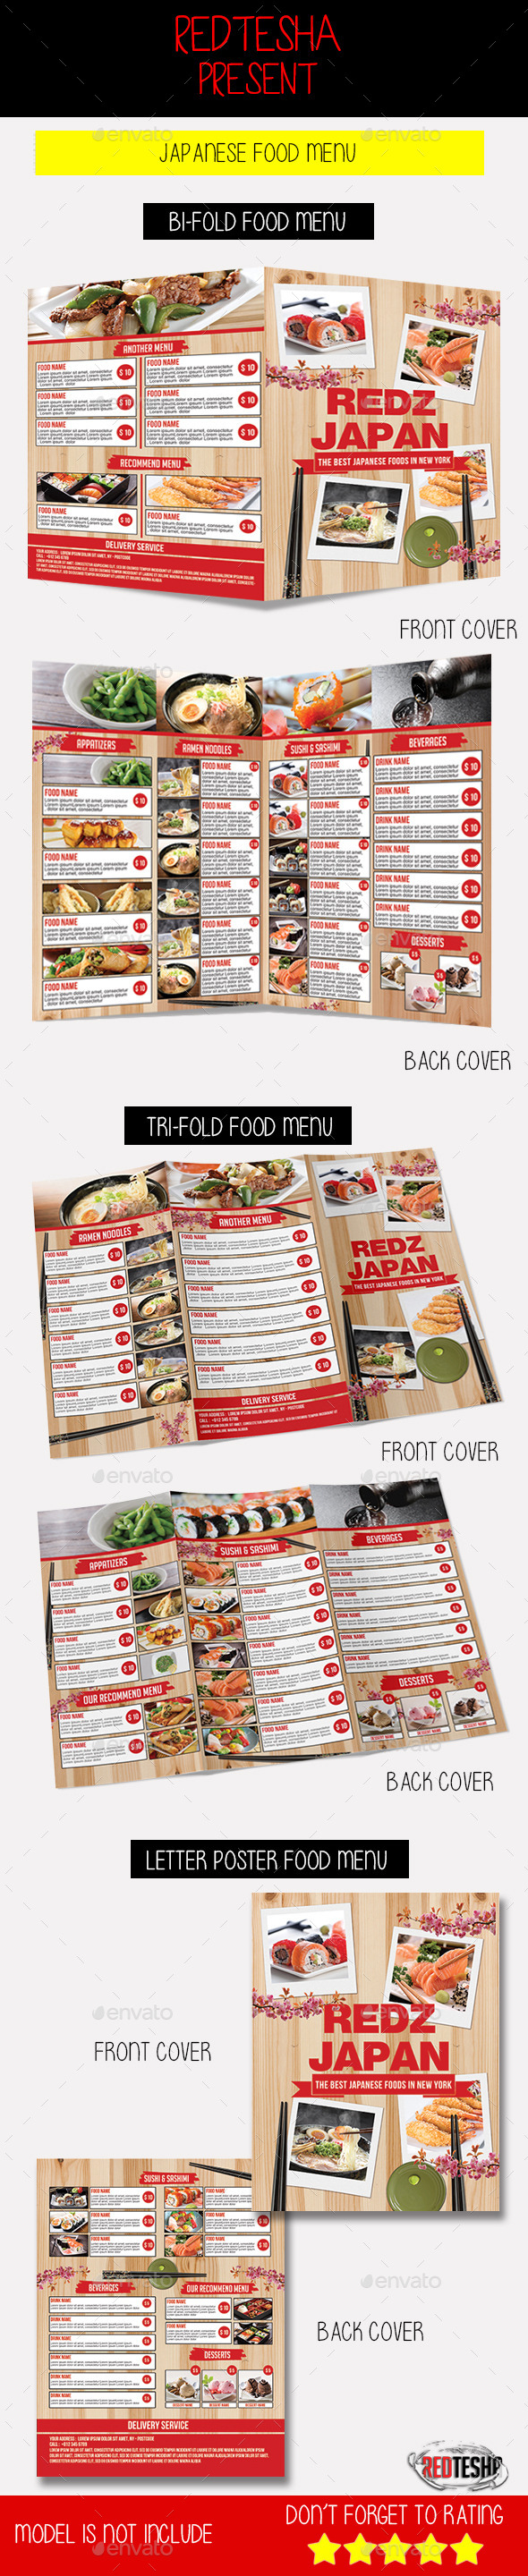 Japanese Food Menu - Food Menus Print Templates